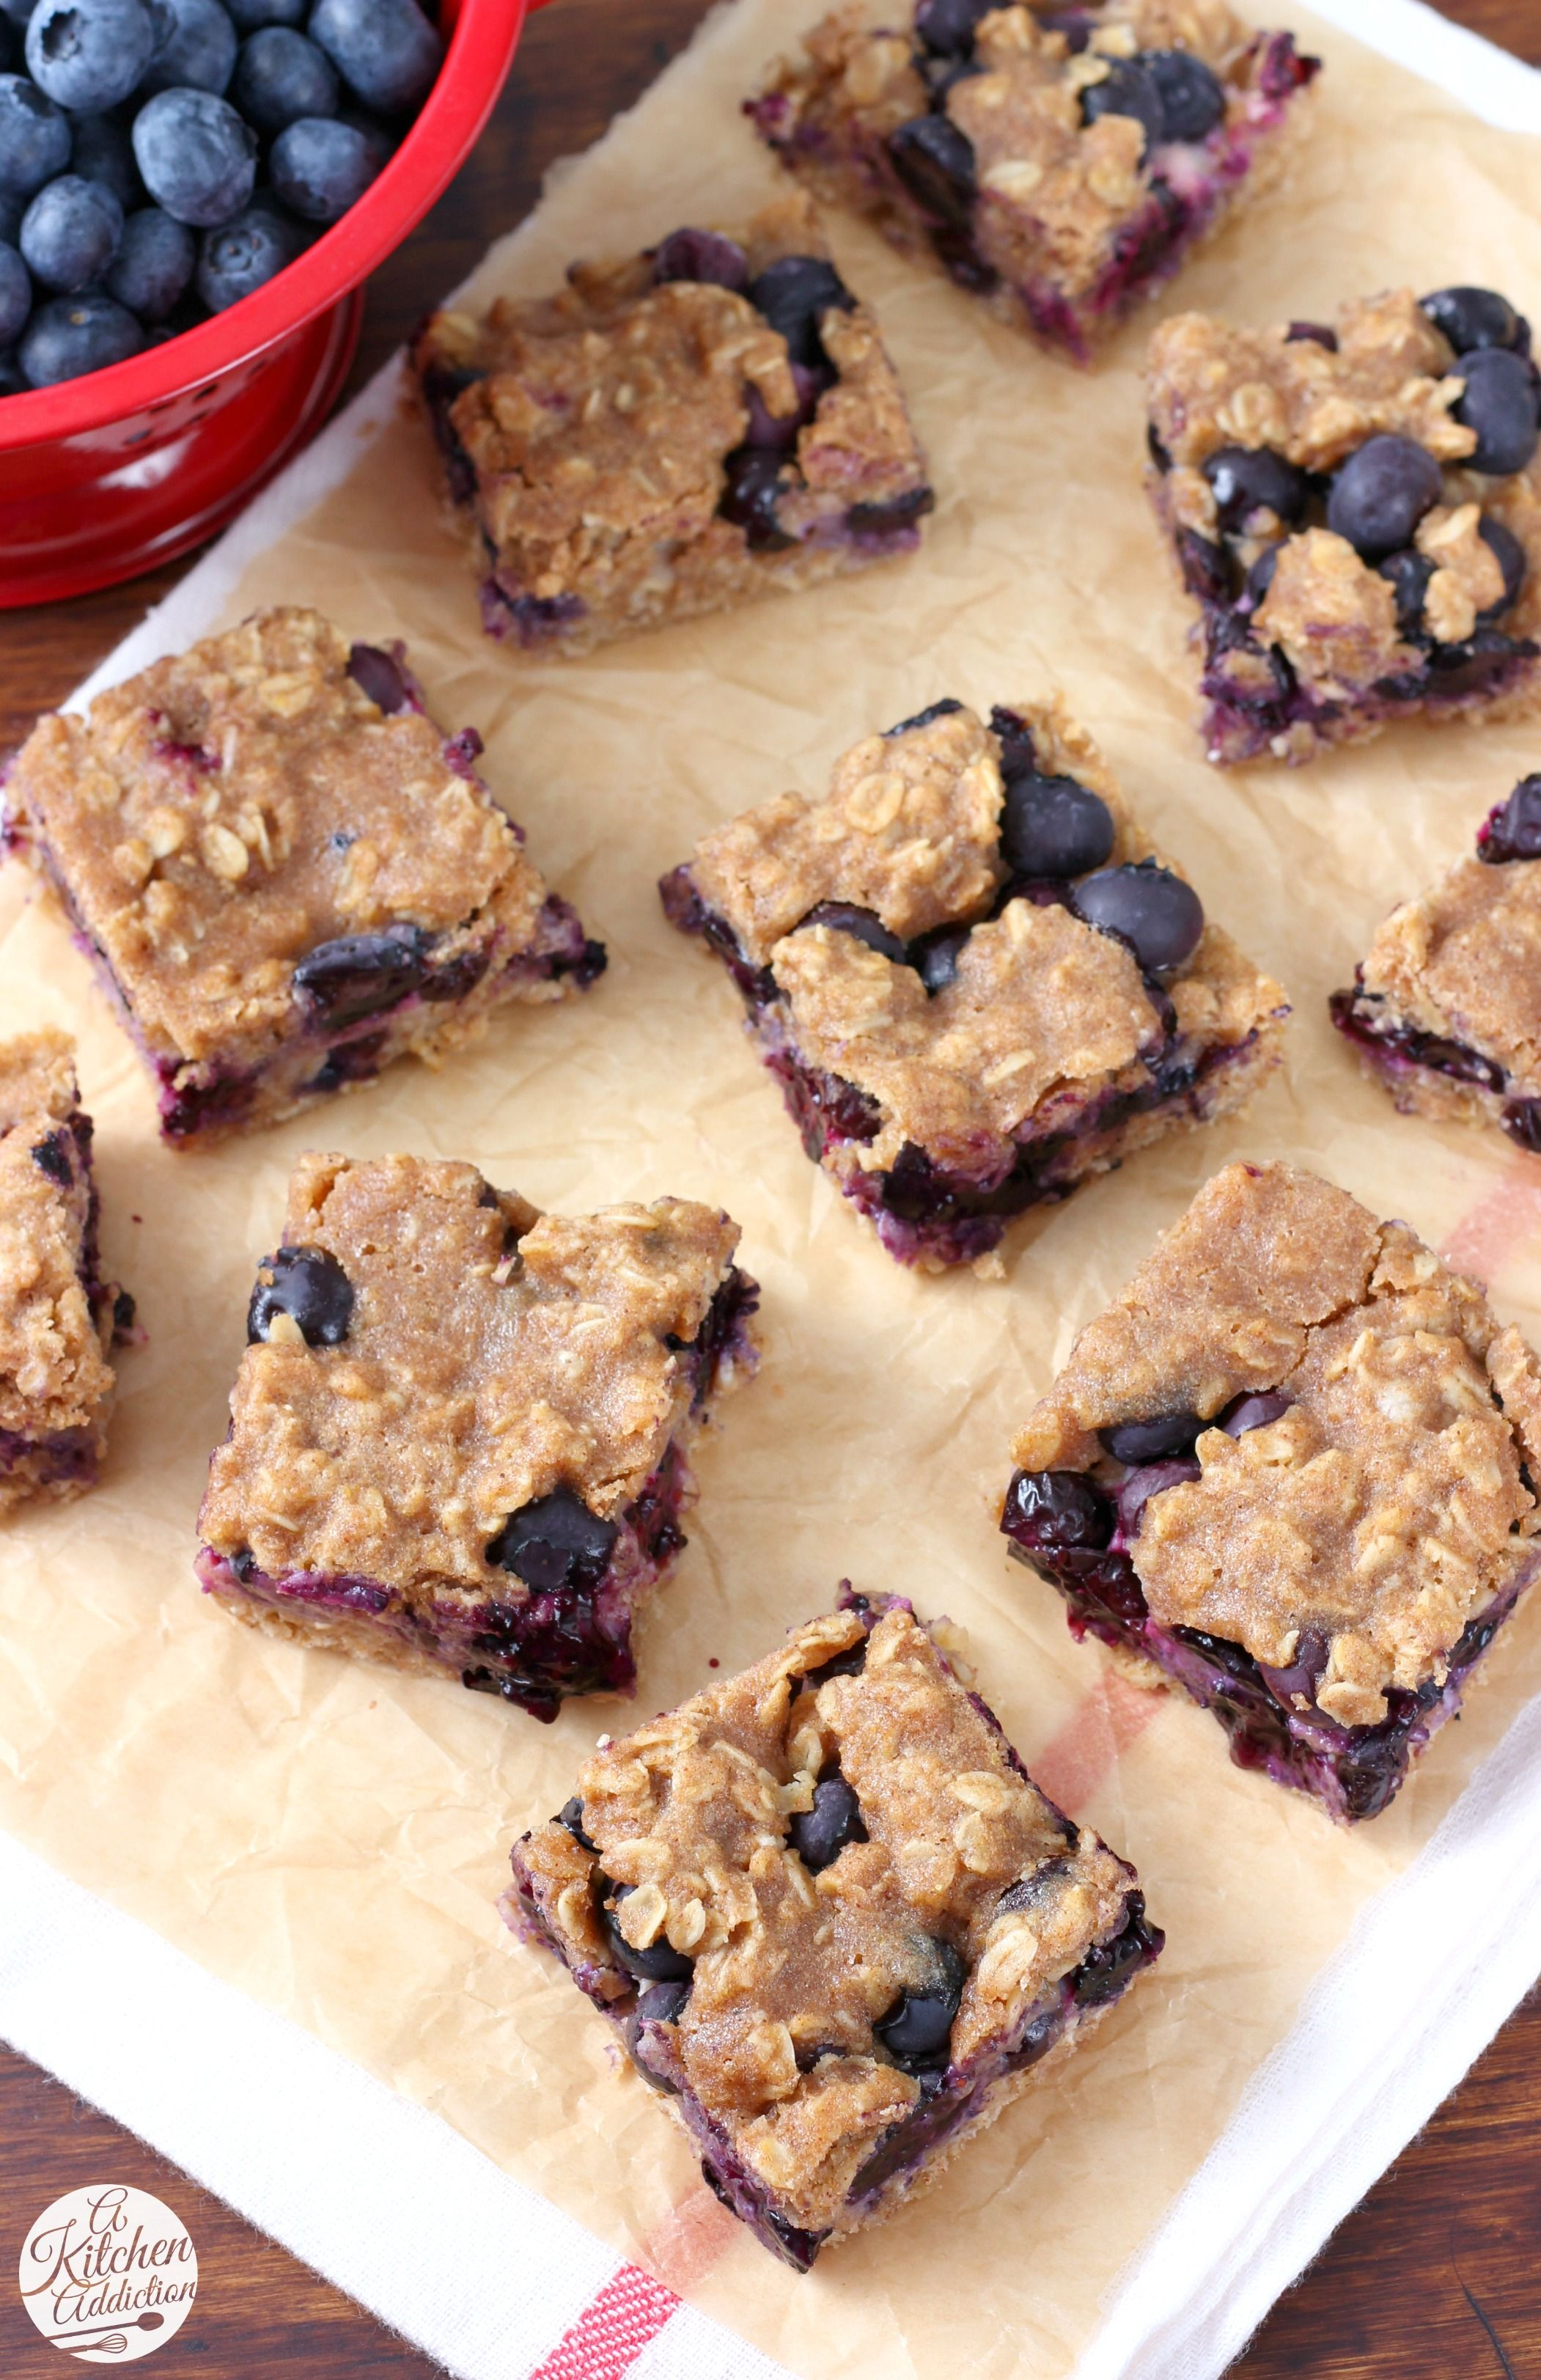 Blueberry Oat Snack Bars Recipe from A Kitchen Addiction